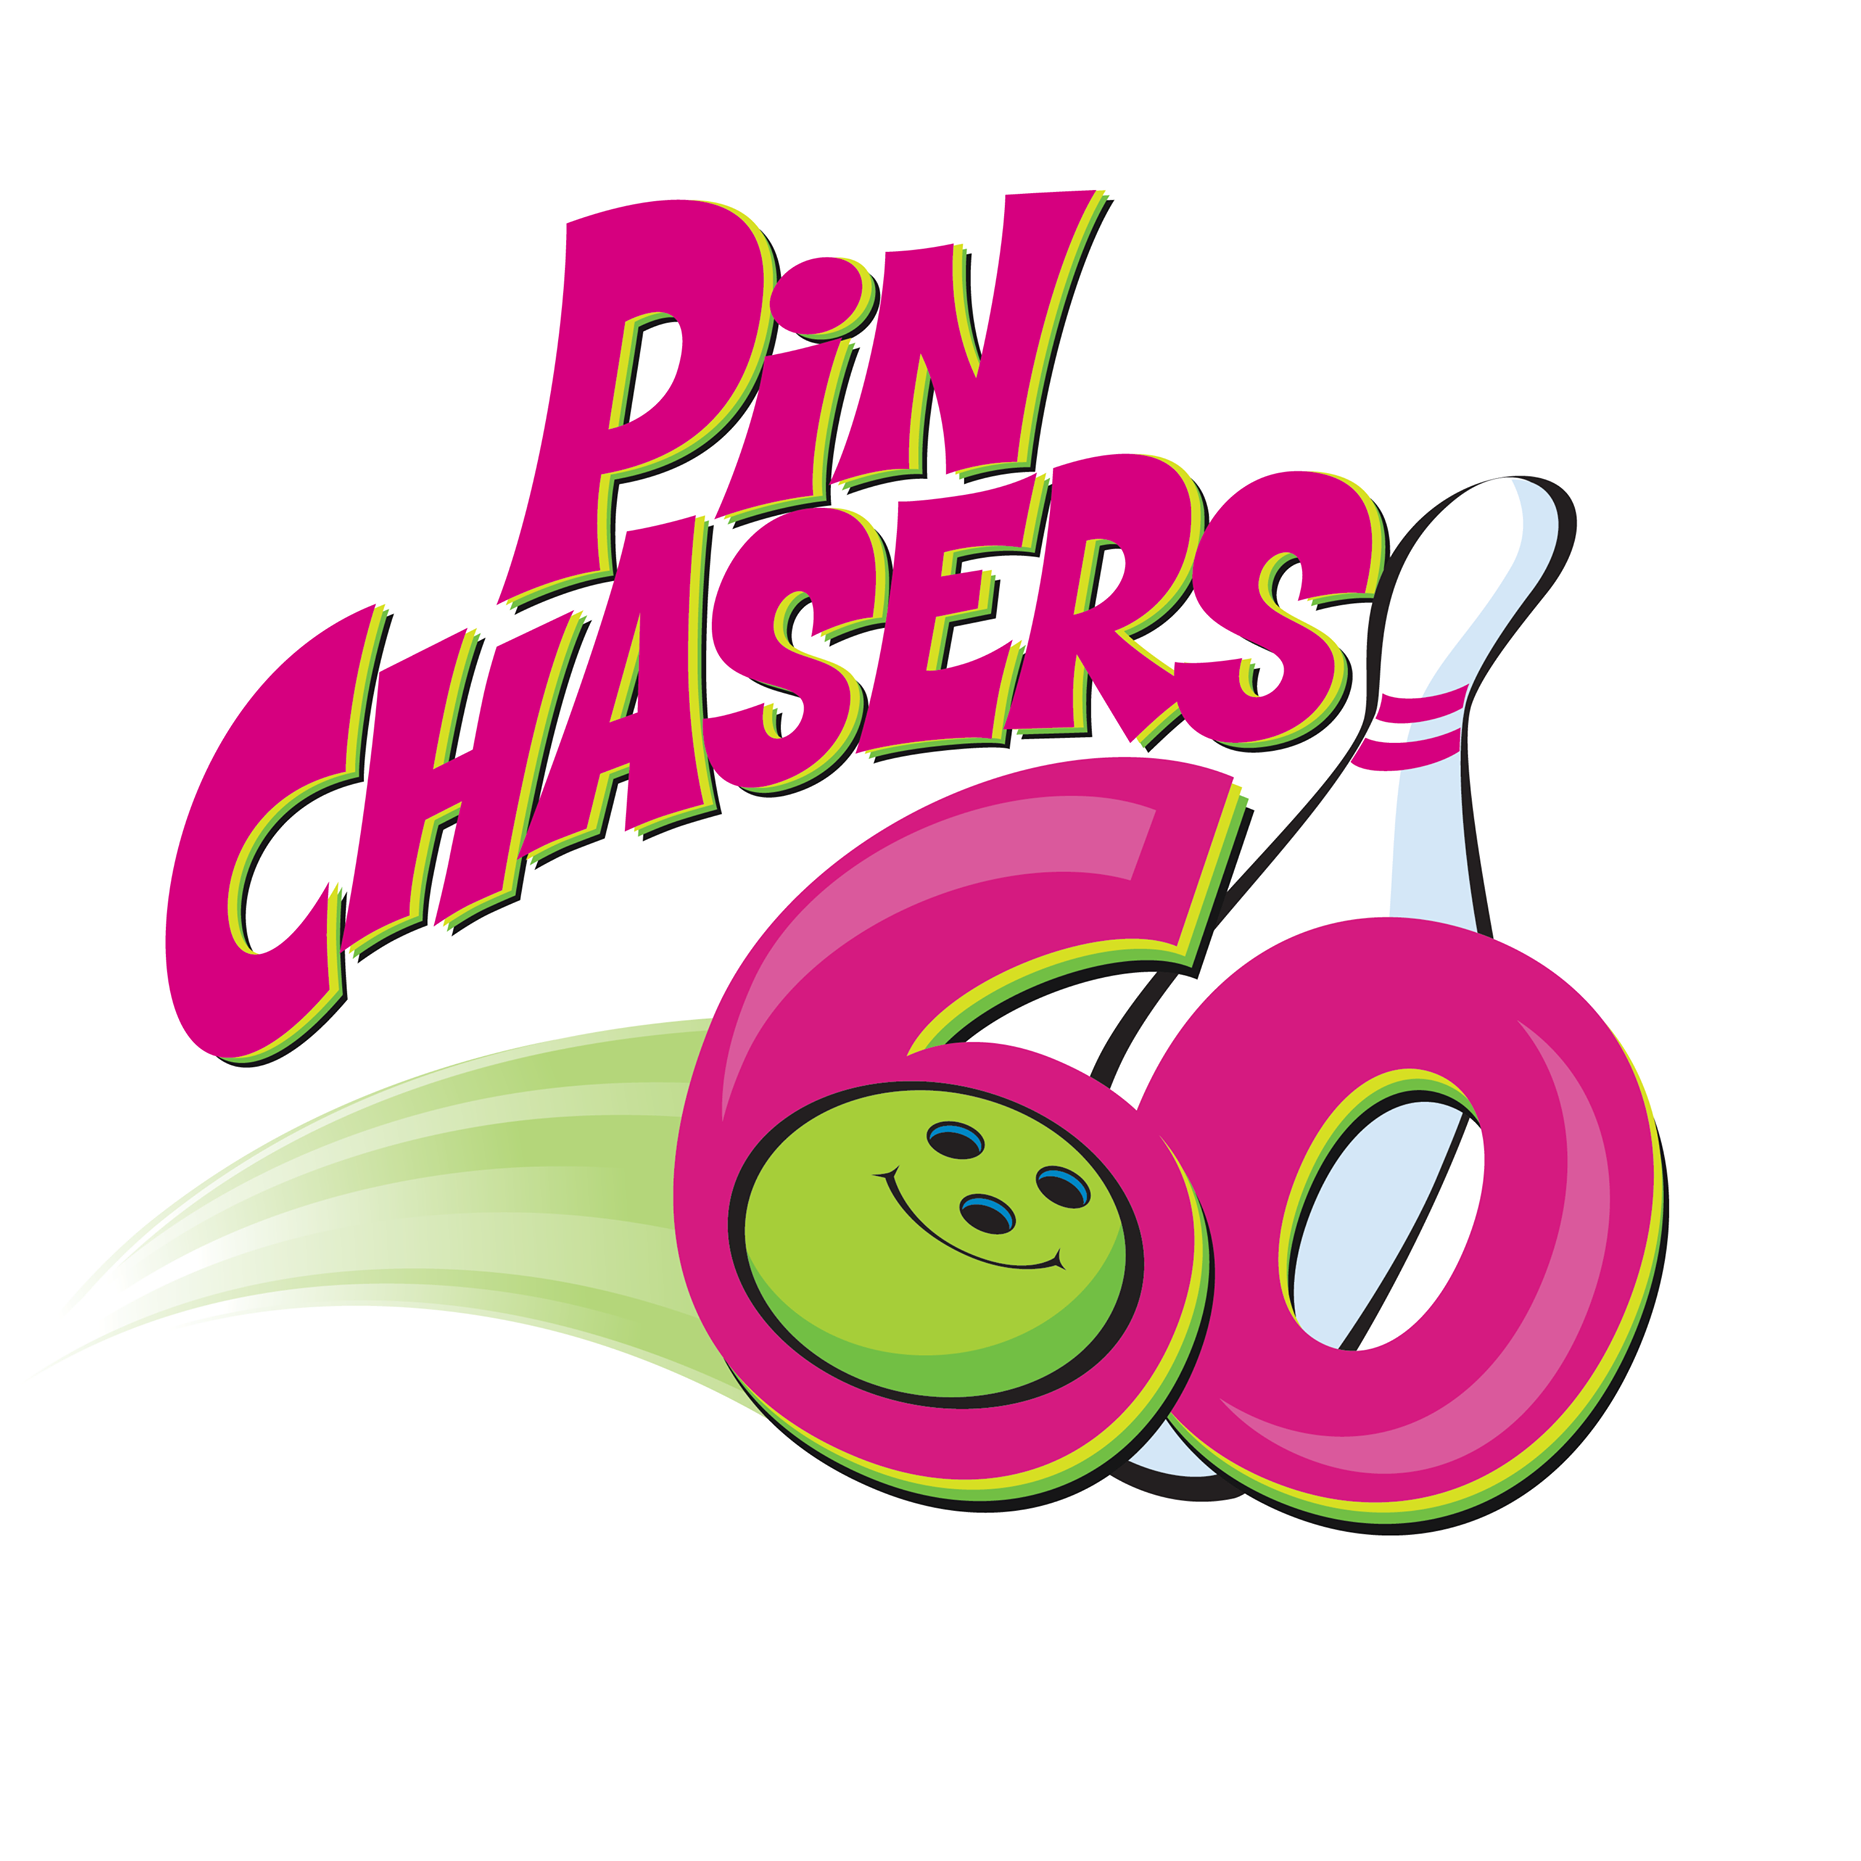 Pin Chasers East Pasco    Address: 6816 Gall Blvd Zephyrhills  Telephone: 813-782-5511   Facebook     Website